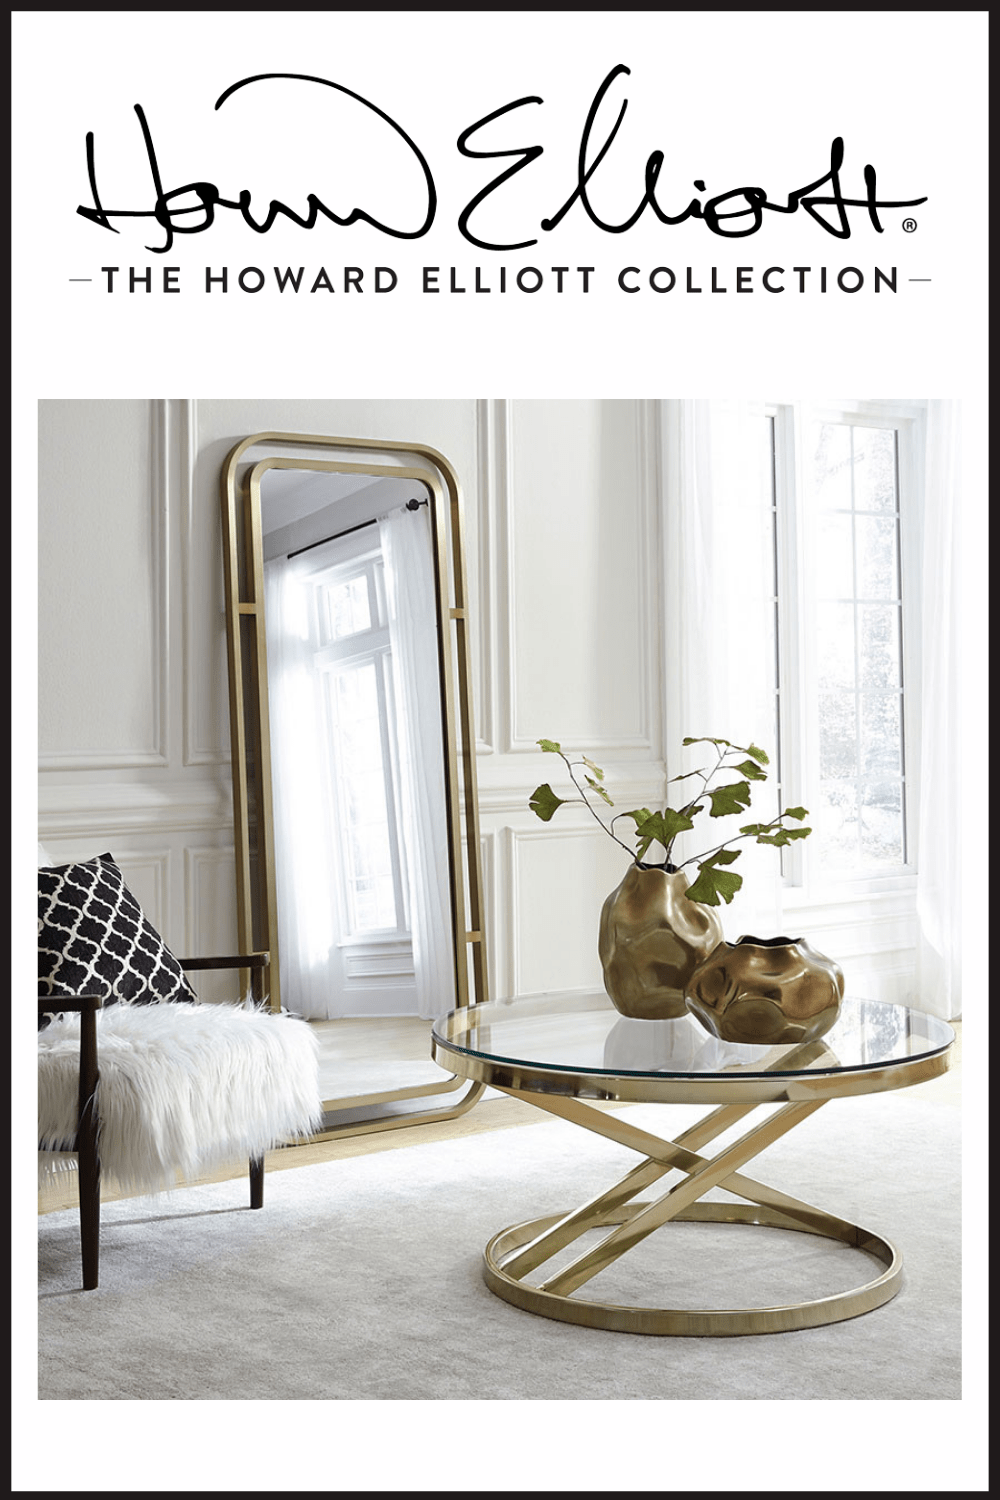 The Howard Elliott Collection mirror and table